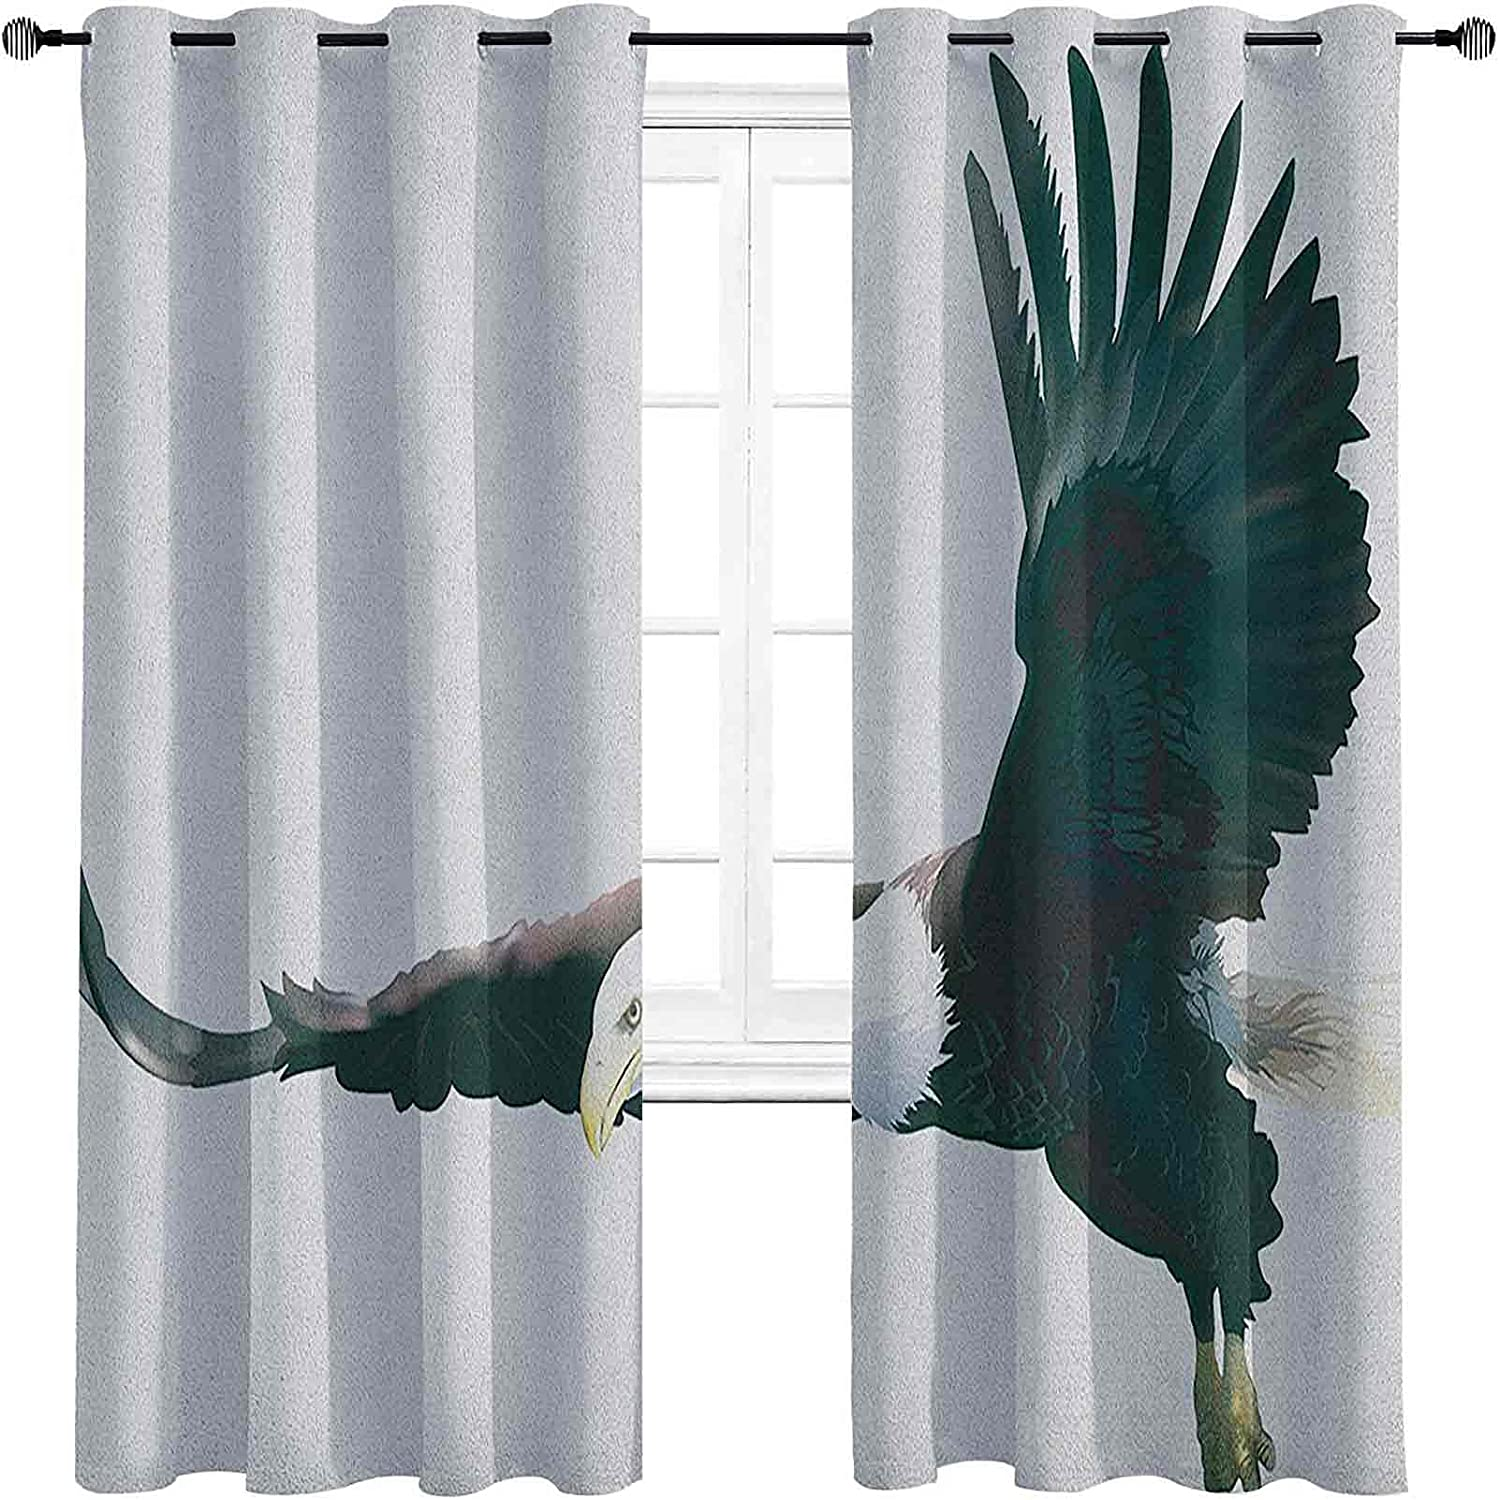 Eagle 90%-99% Blackout Max 57% OFF Lining Curtain Baltimore Mall Digital of Art a Pre Huge